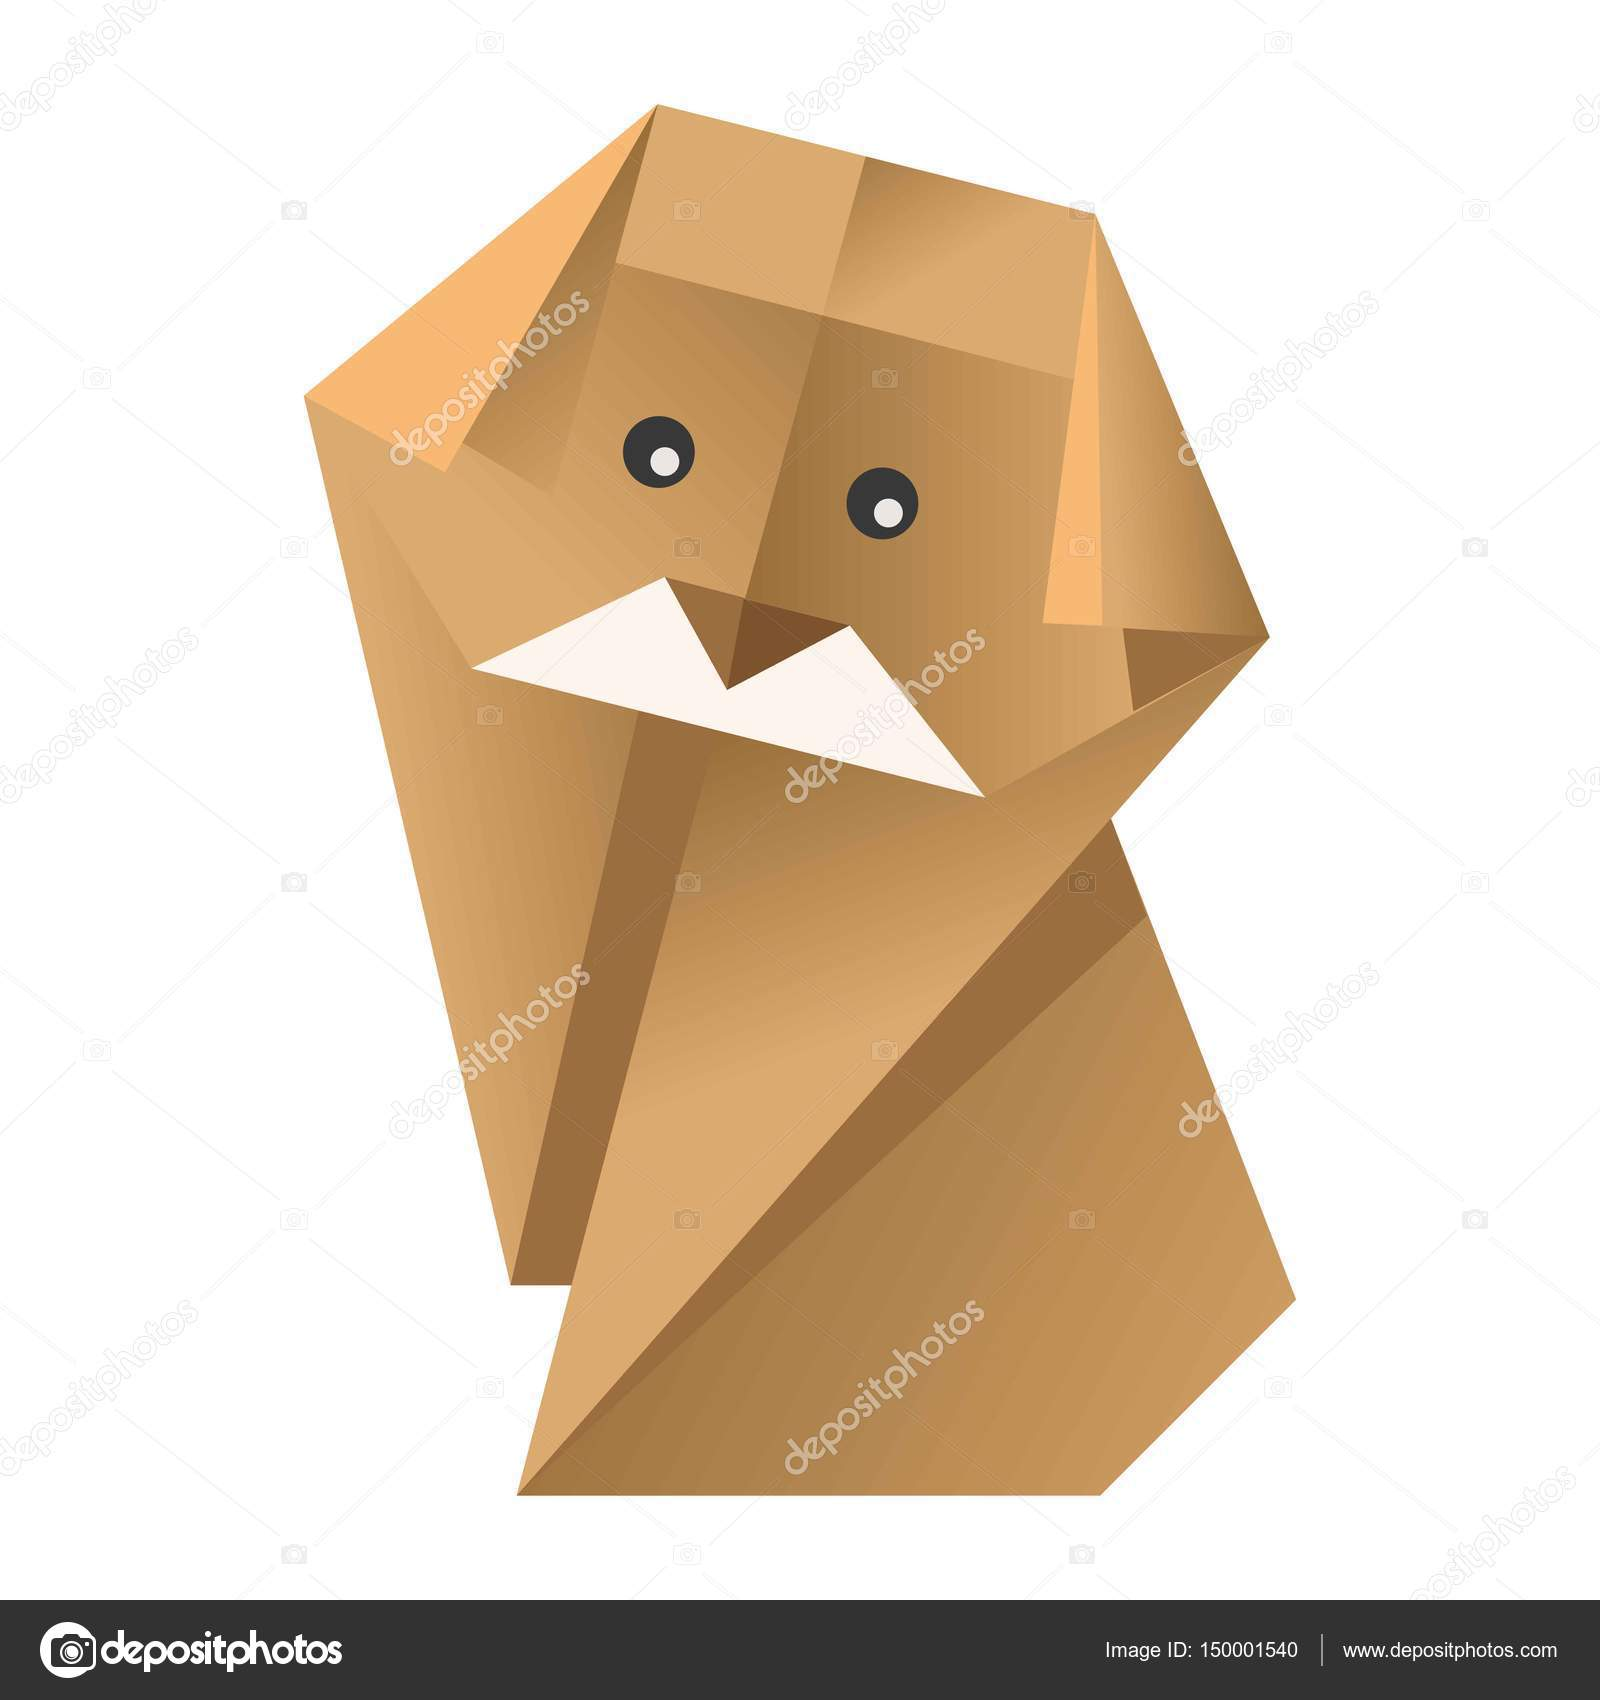 Paper Origami Colorful Dog With Black Eyes Isolated On White Vector Flat Illustration Yellow Domestic Animal Made Of Cardboard Human Craftsmanship Figure